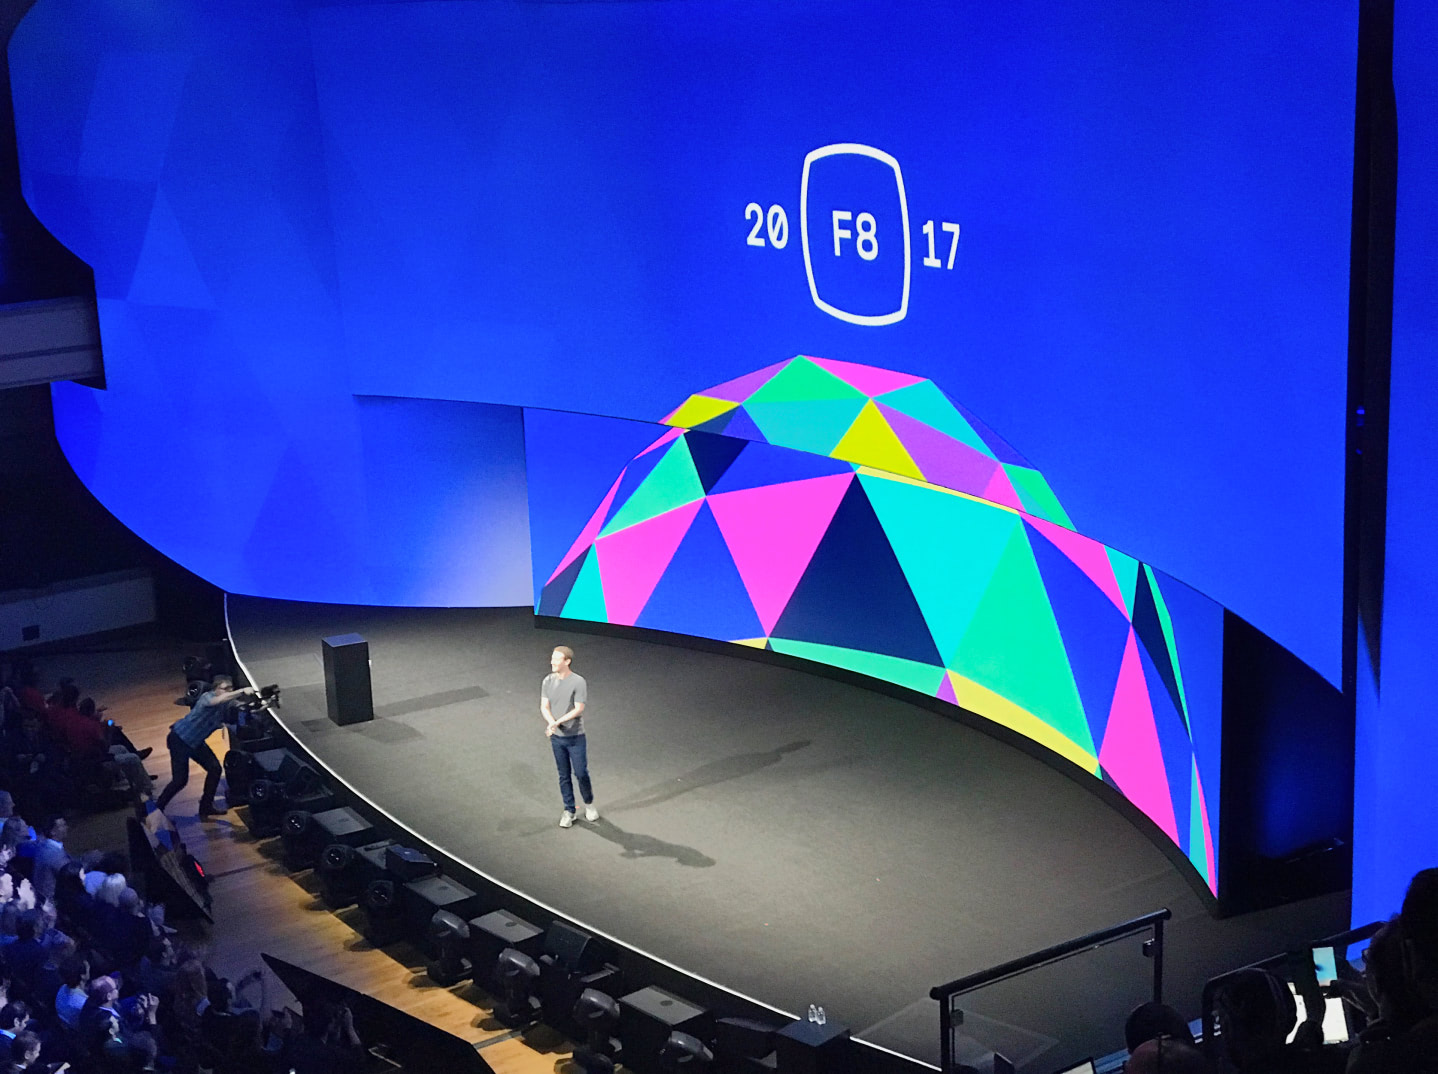 Facebook - Helping Facebook define and launch Messenger Payments.